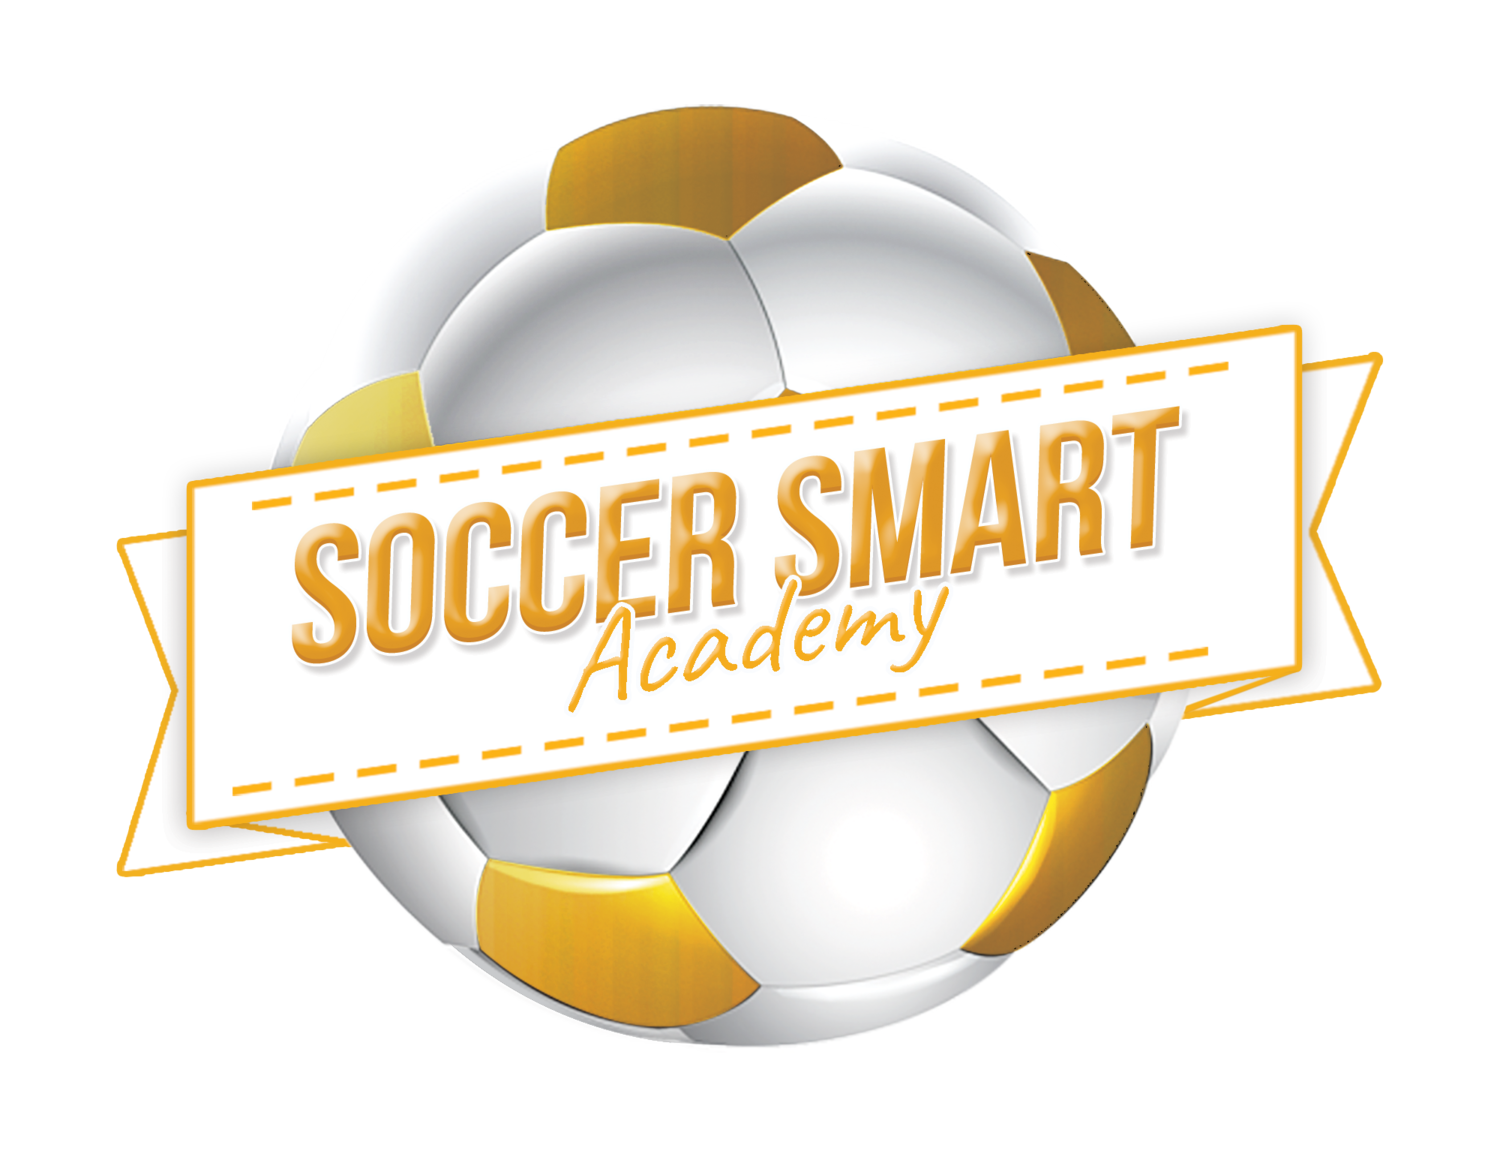 The Soccer Smart Academy